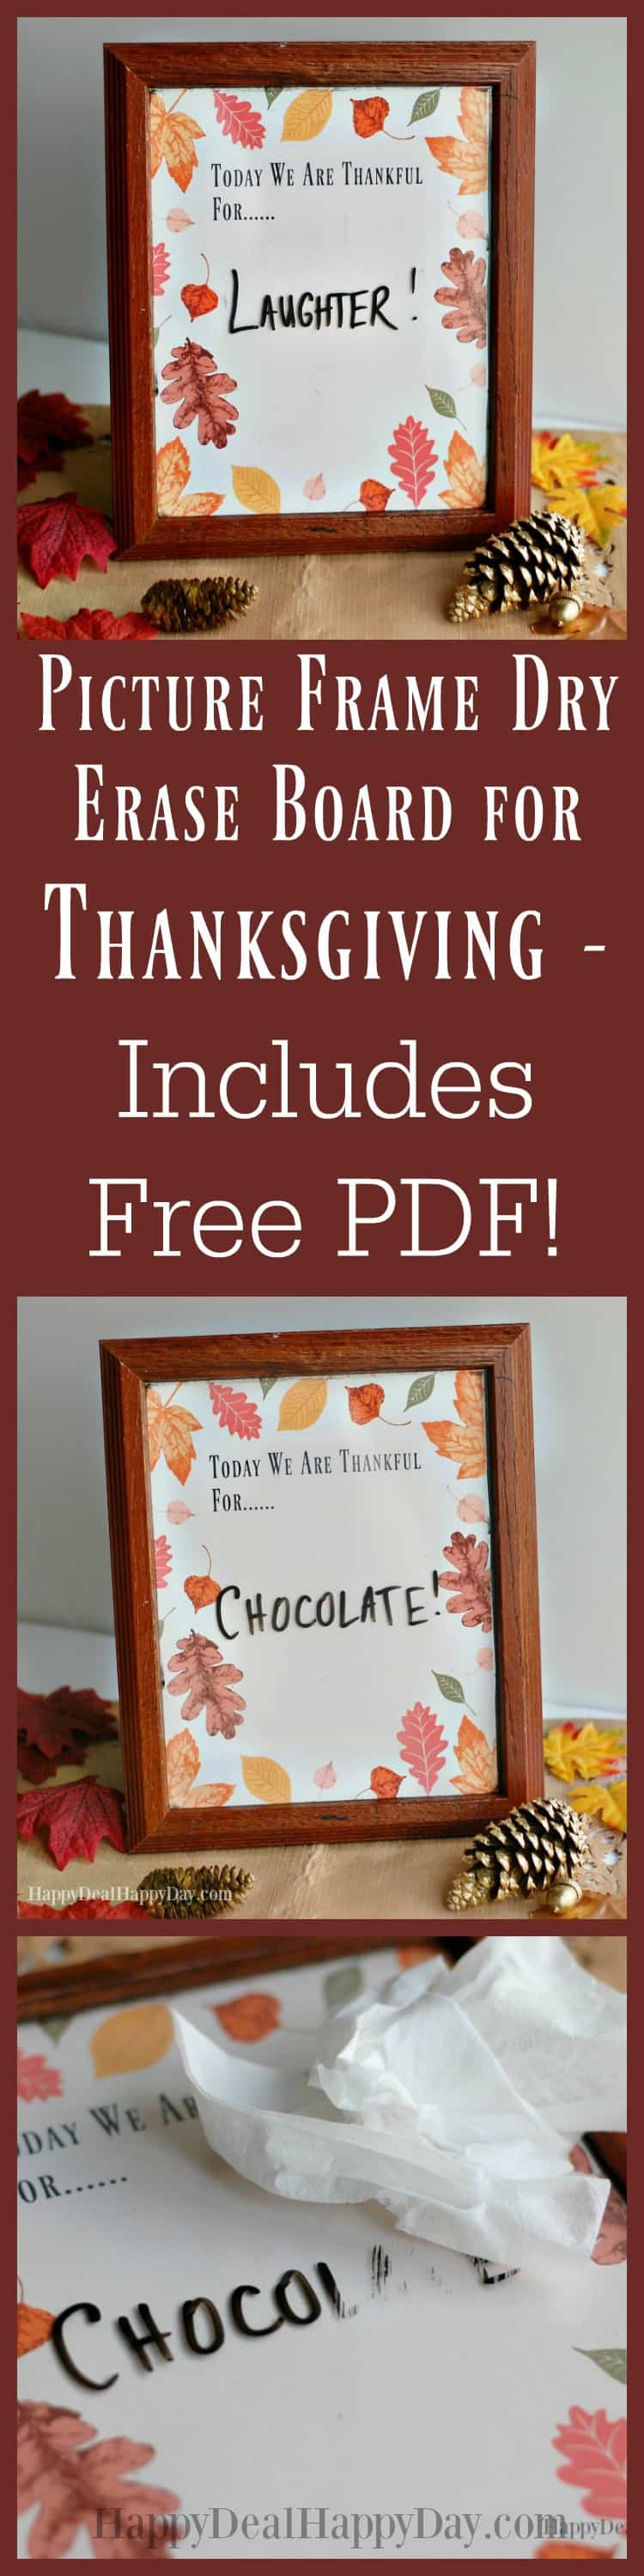 Picture Frame Dry Erase Board for Thanksgiving - Includes Free ...